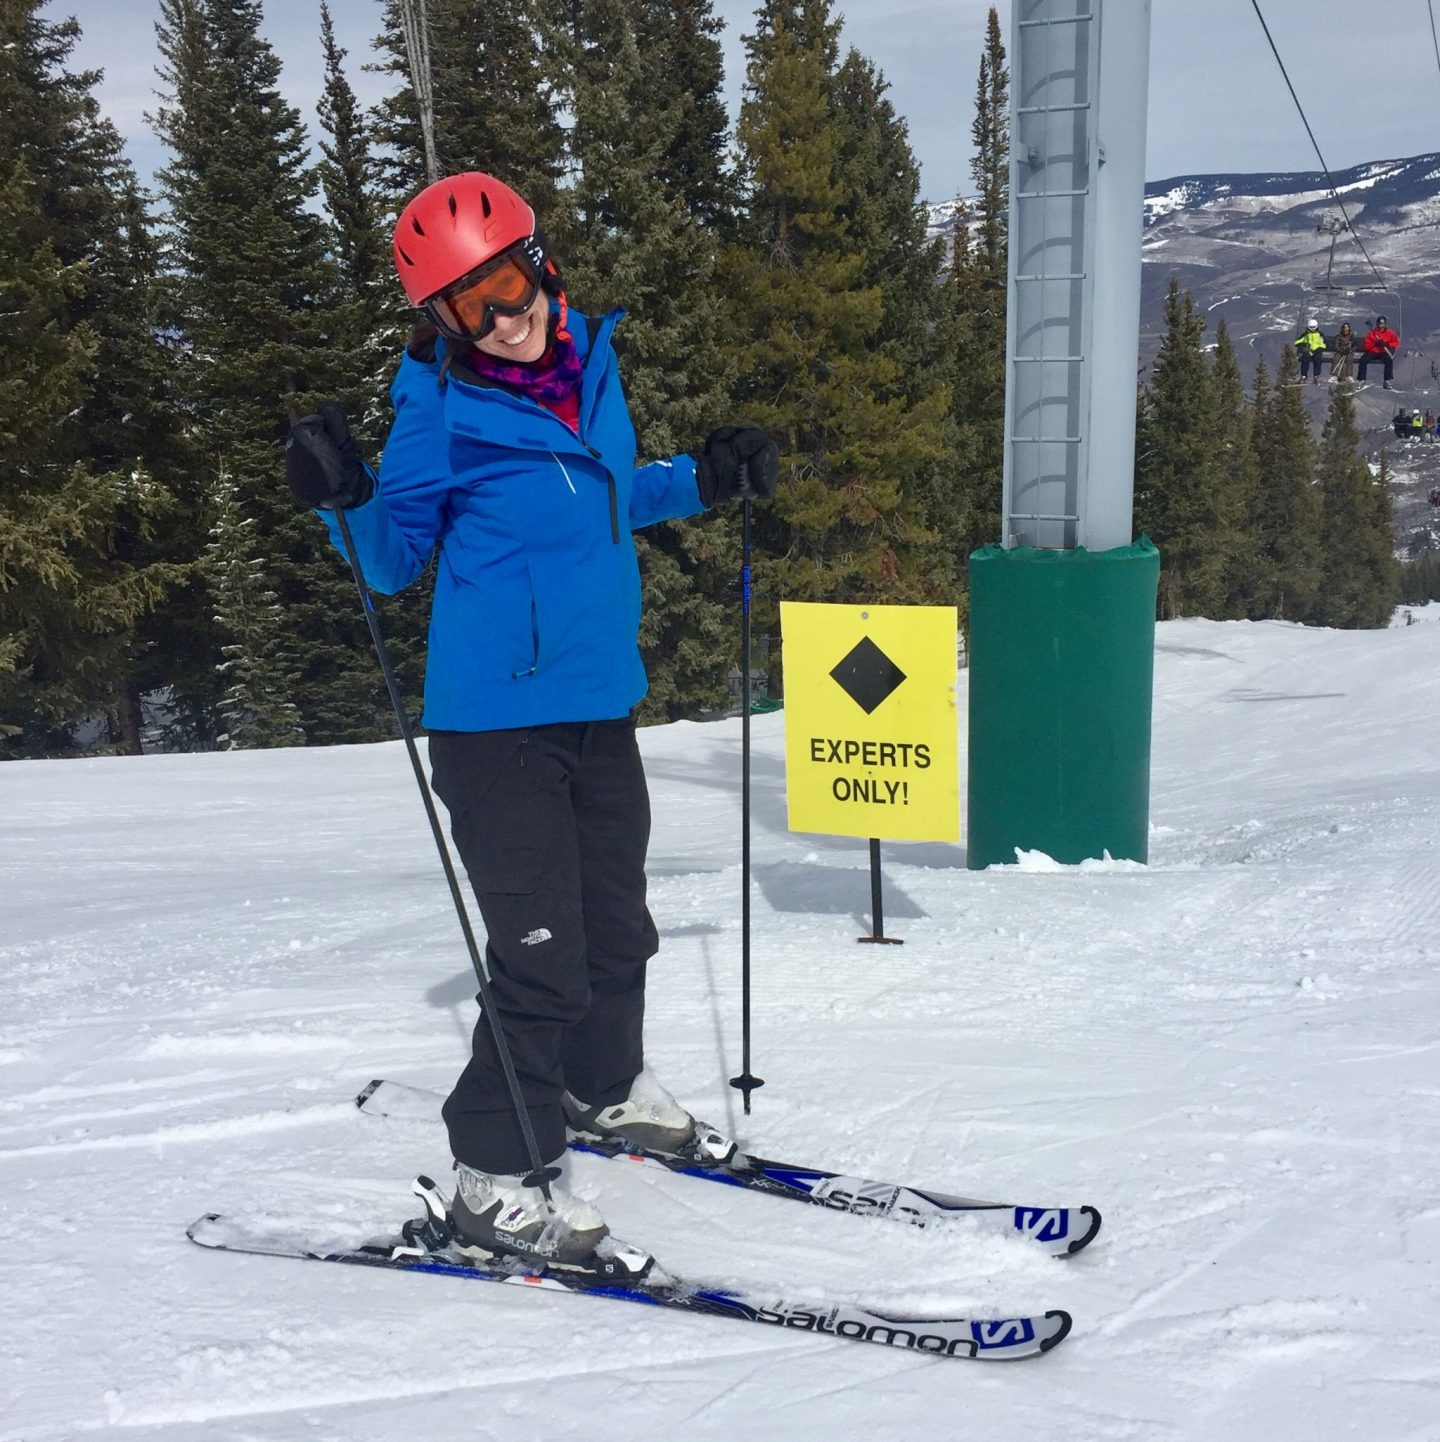 black runs Beaver Creek